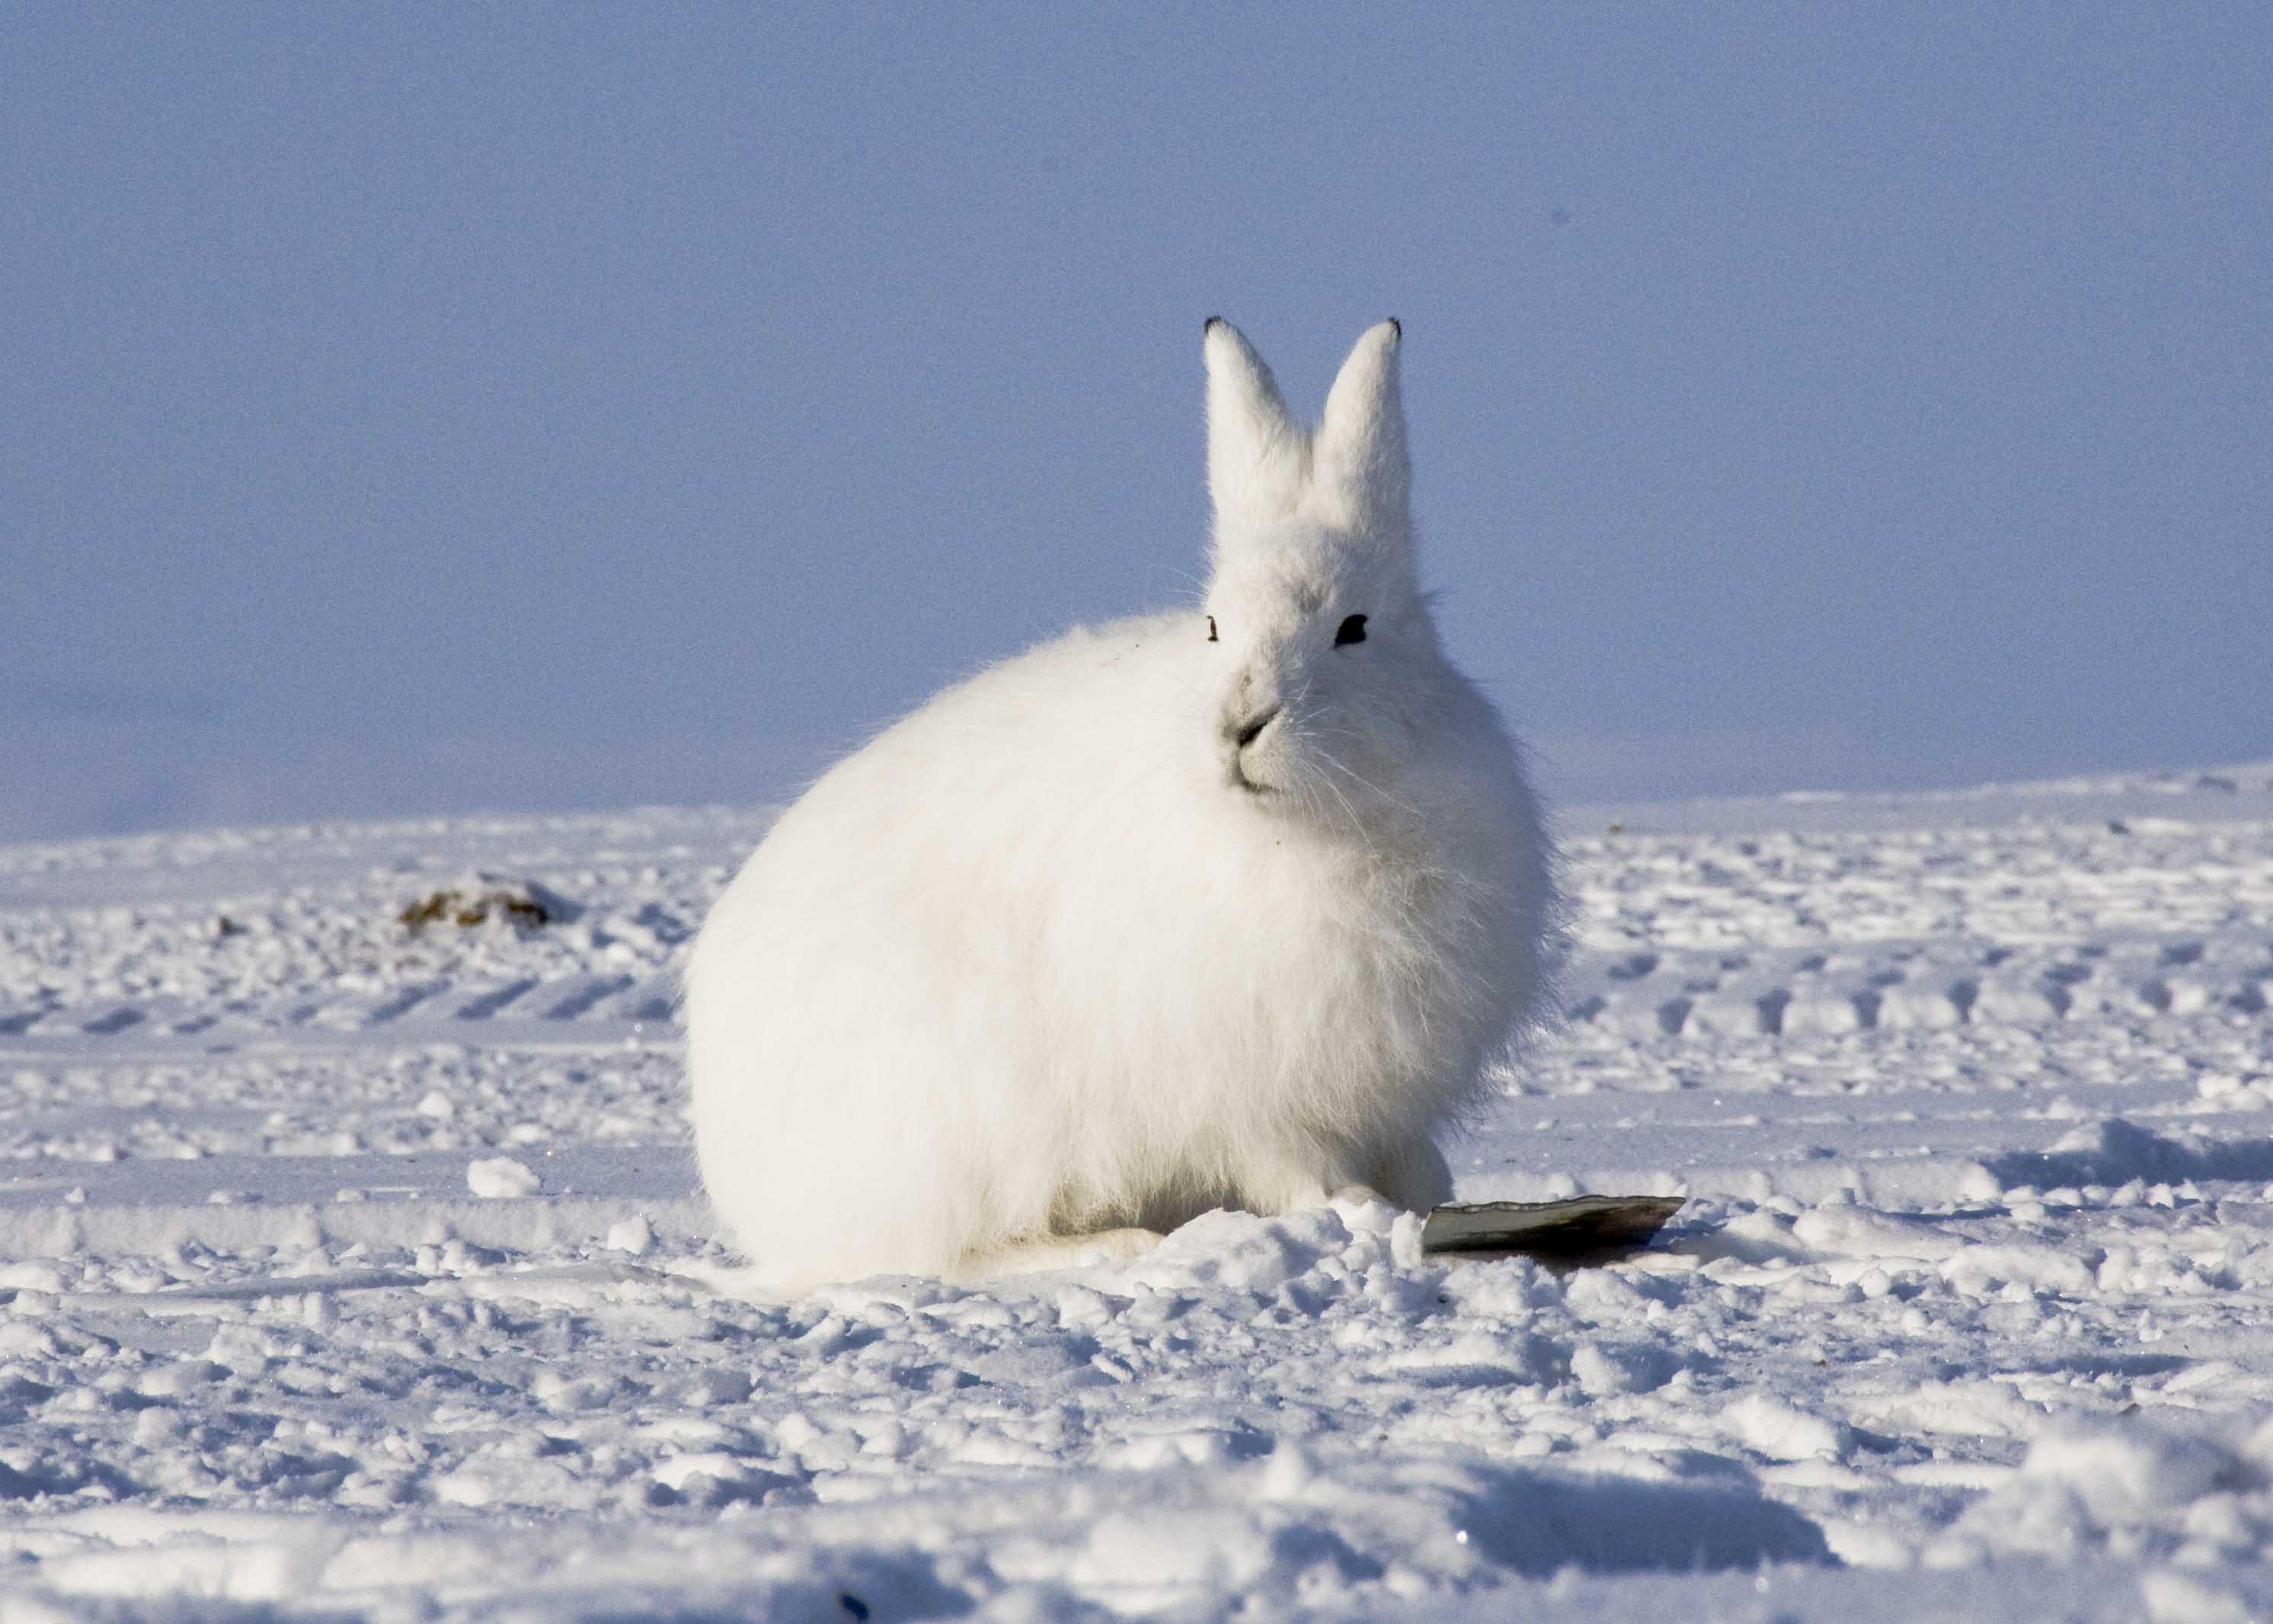 polar bear fur diagram 3 phase start stop switch wiring arctic hare facts history useful information and amazing